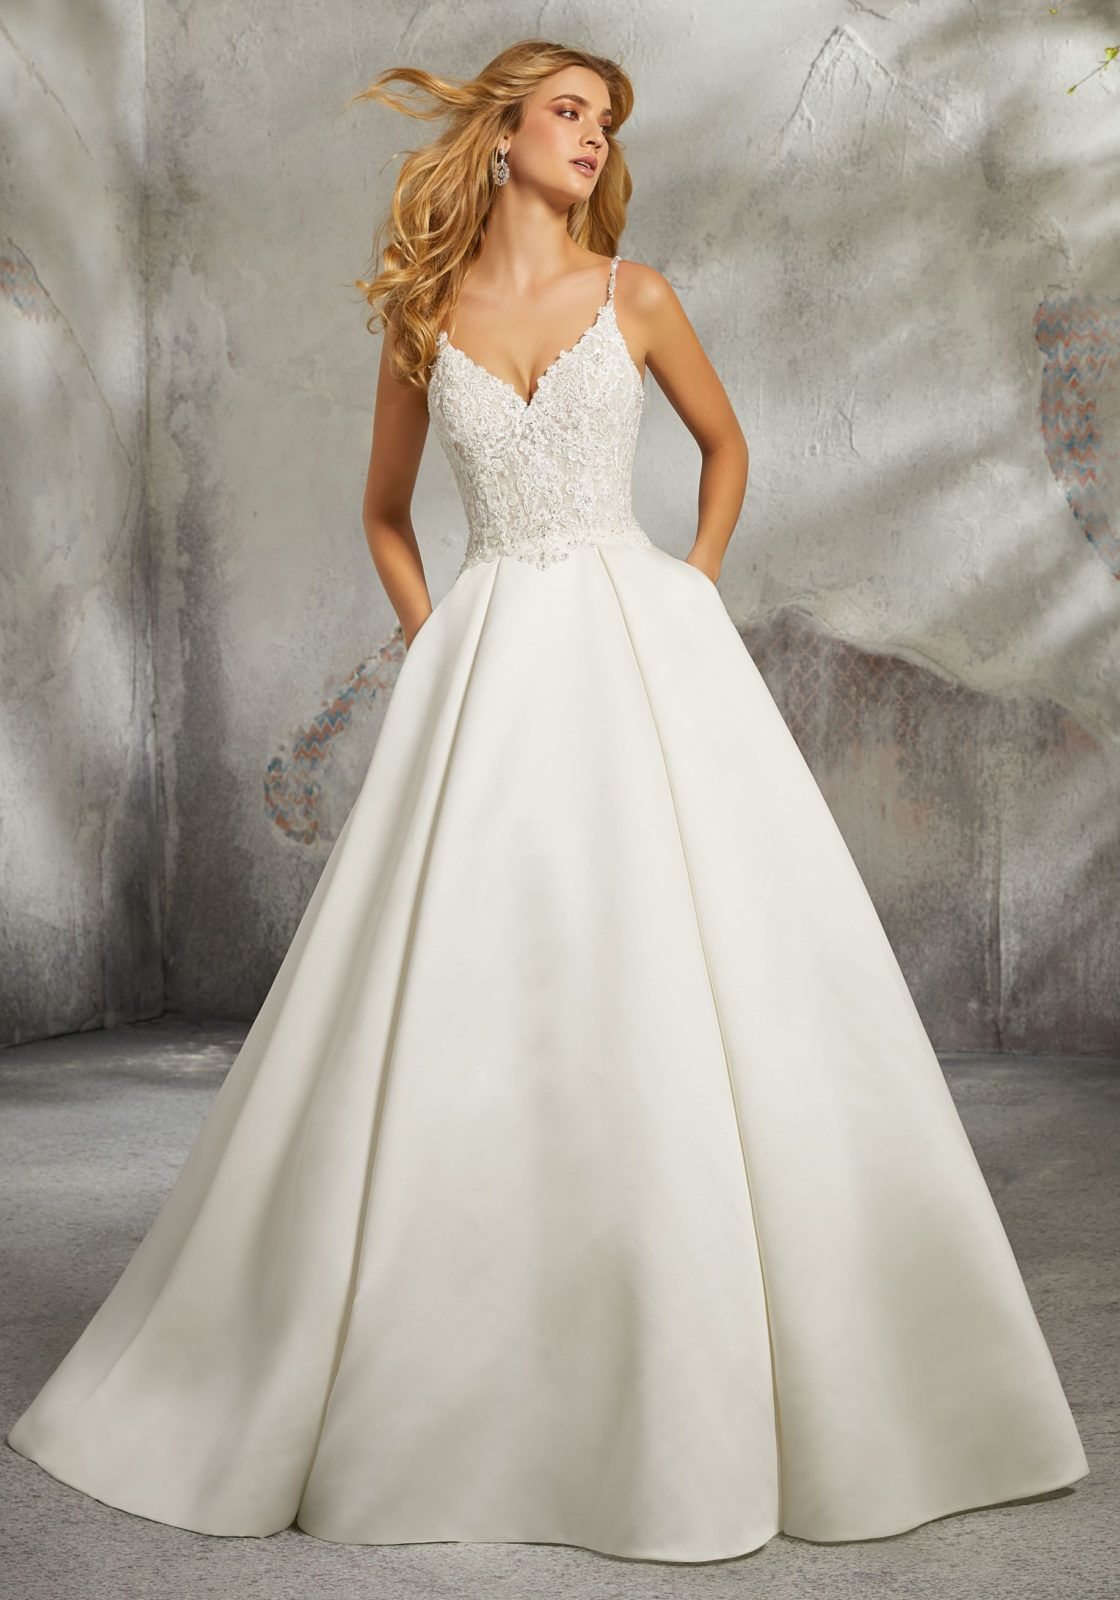 Luella Wedding Dress Morilee In 2020 Wedding Dress Styles